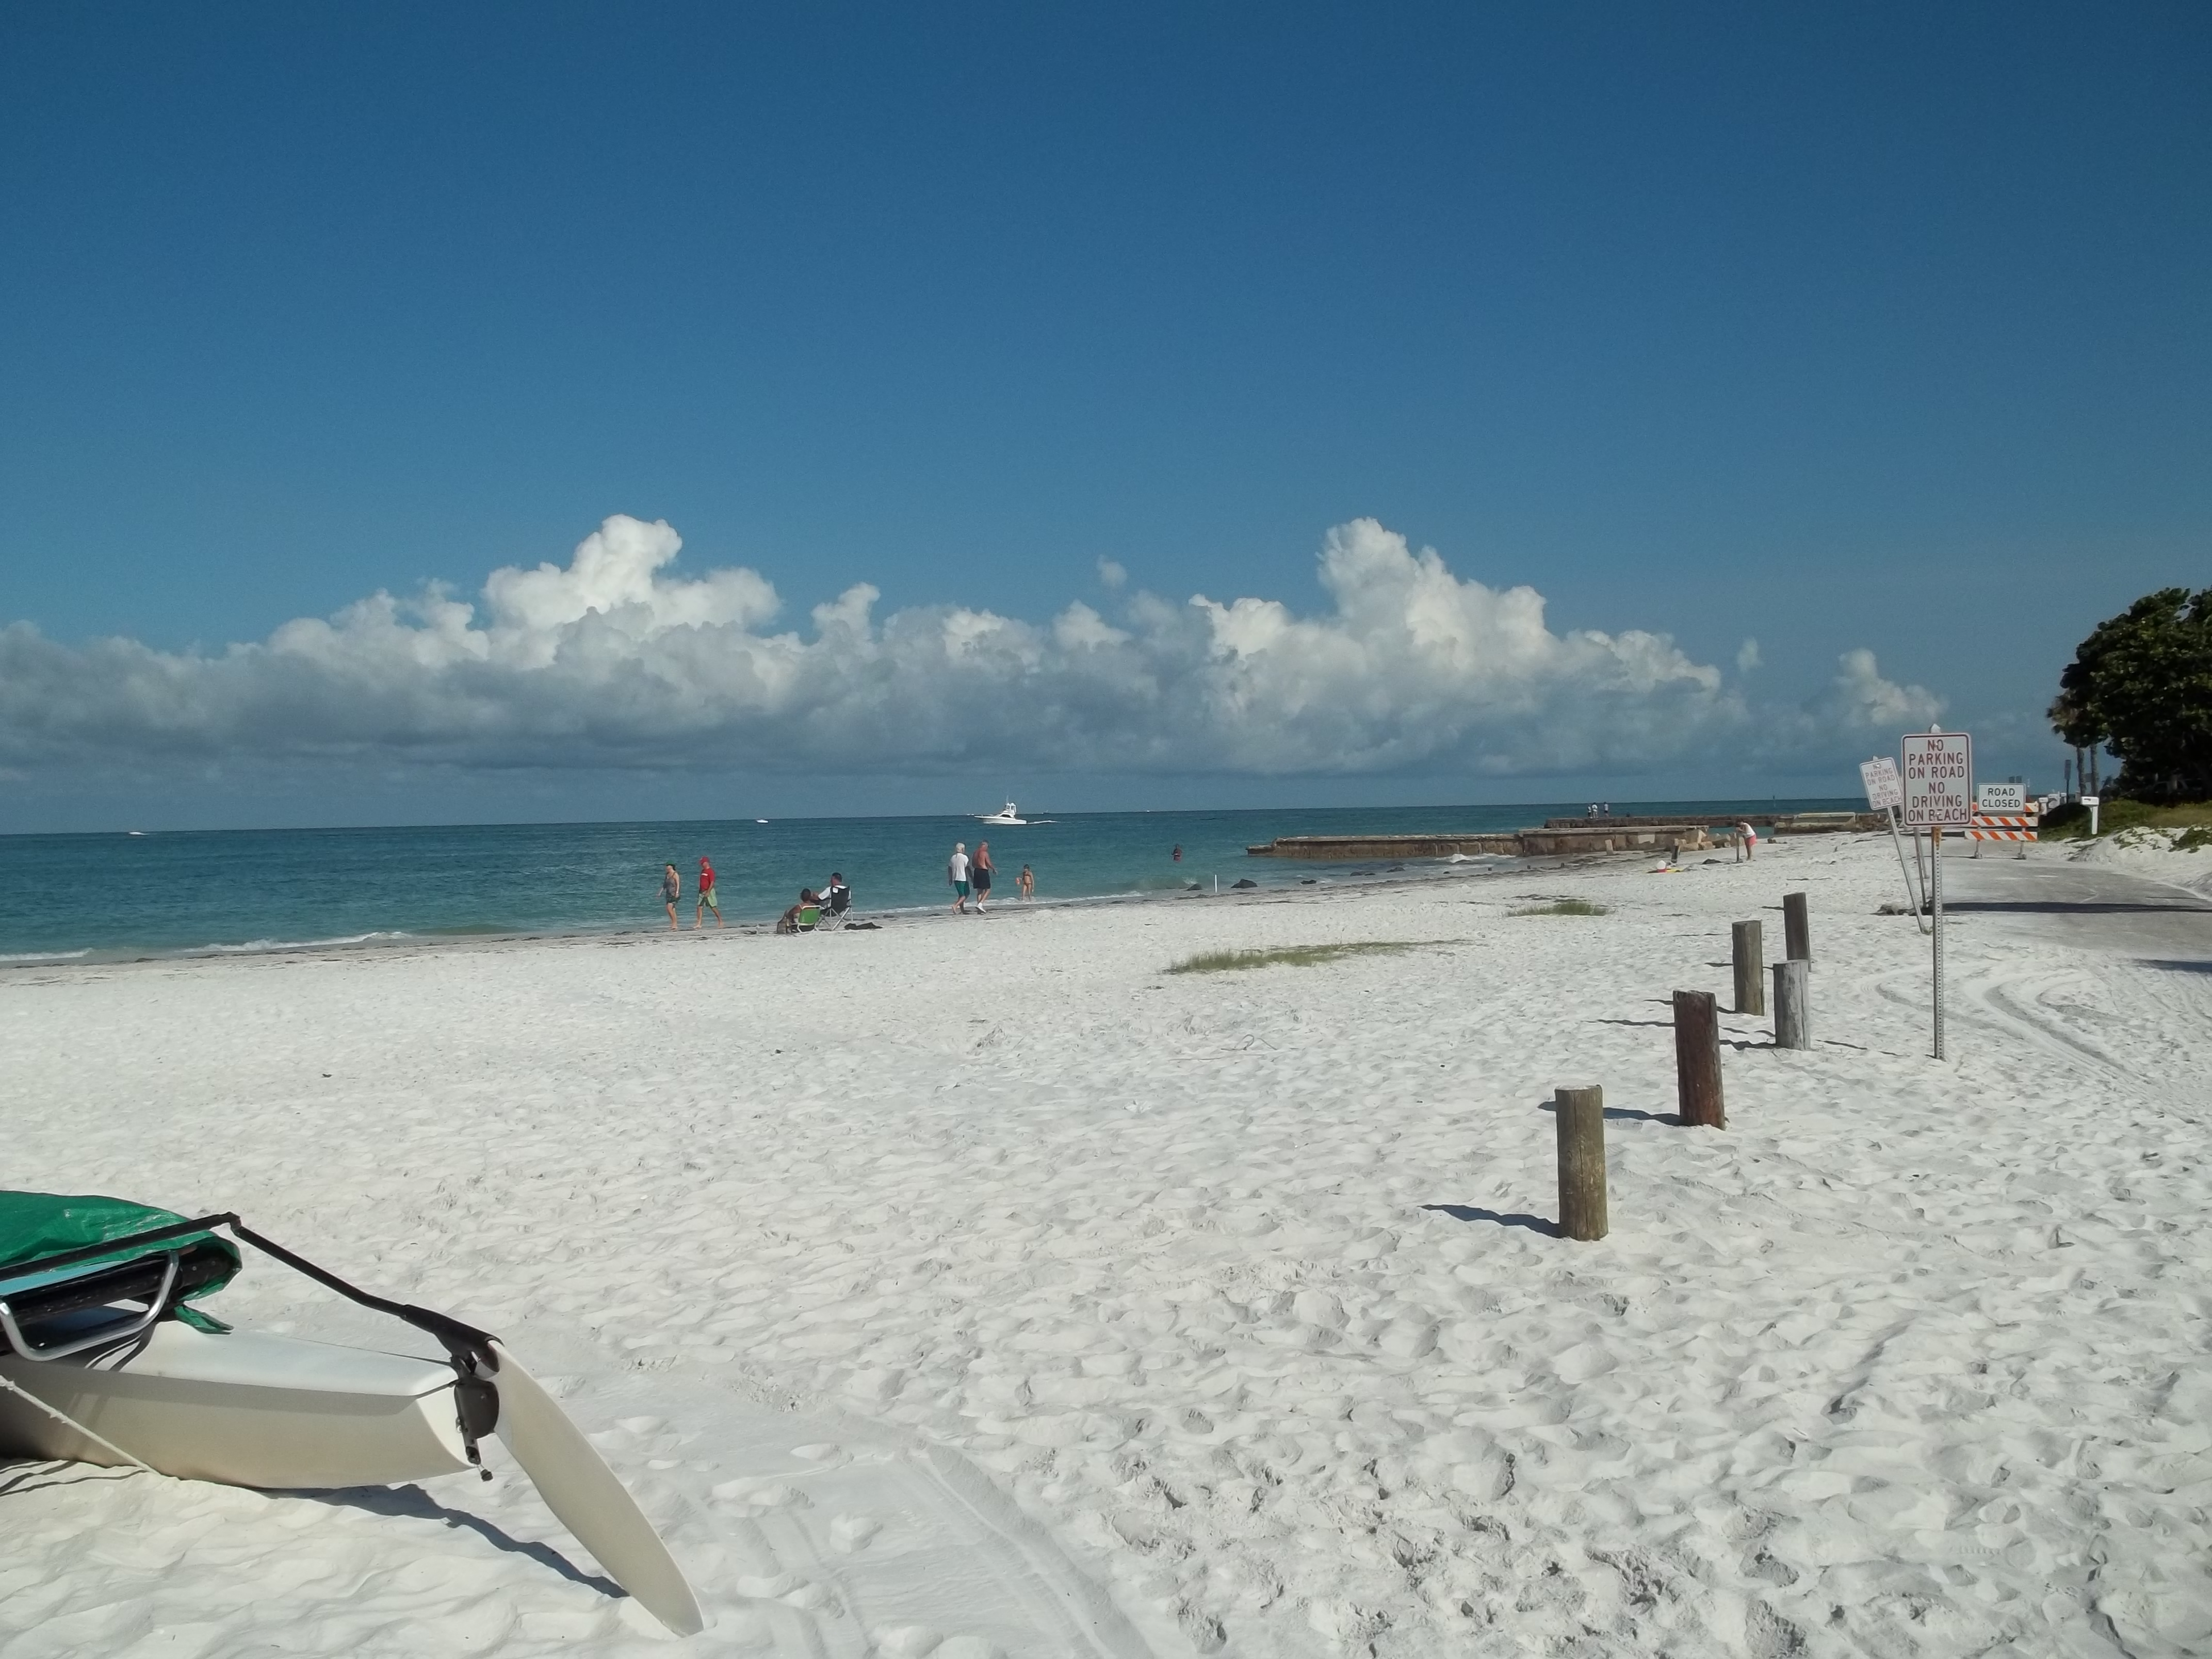 Sarasota beaches - Hi Everyone Today S Trip Is To Florida One Of My Friends Is In Sarasota So That Is Where We Are Going Today Sarasota Florida Usa